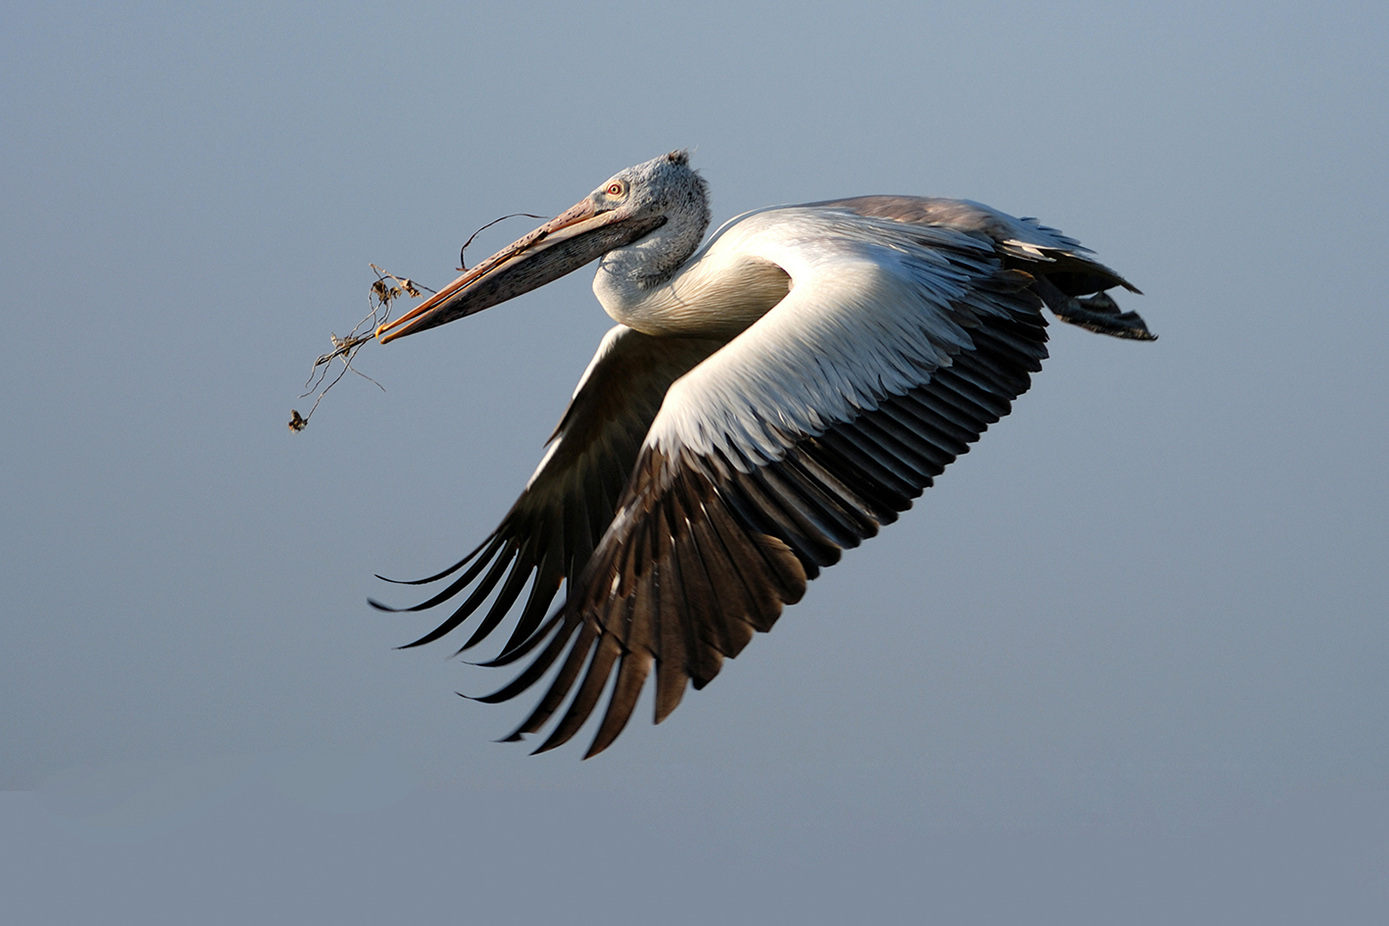 A Spot-billed Pelican gathers small twigs to use for building its nest. Every year hundreds of these endangered species migrate from northern parts of the country to nest in a few wetlands in south India